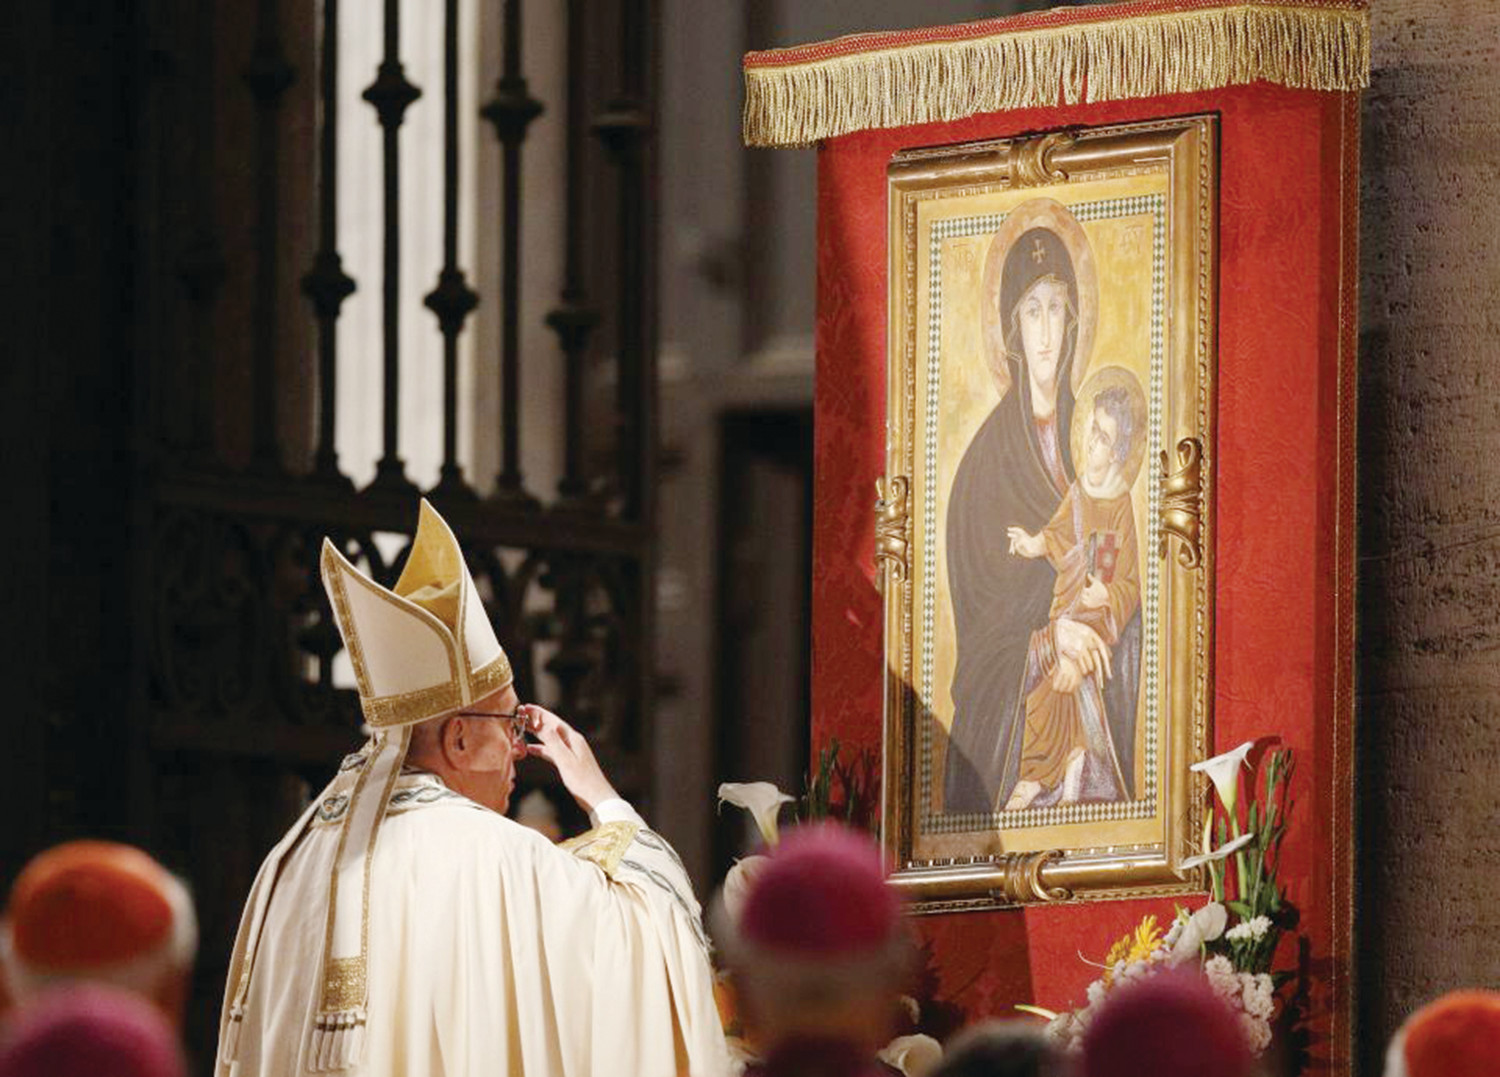 Pope Francis venerates a Marian image outside the Basilica of St. Mary Major in Rome in this May 26, 2016, file photo.